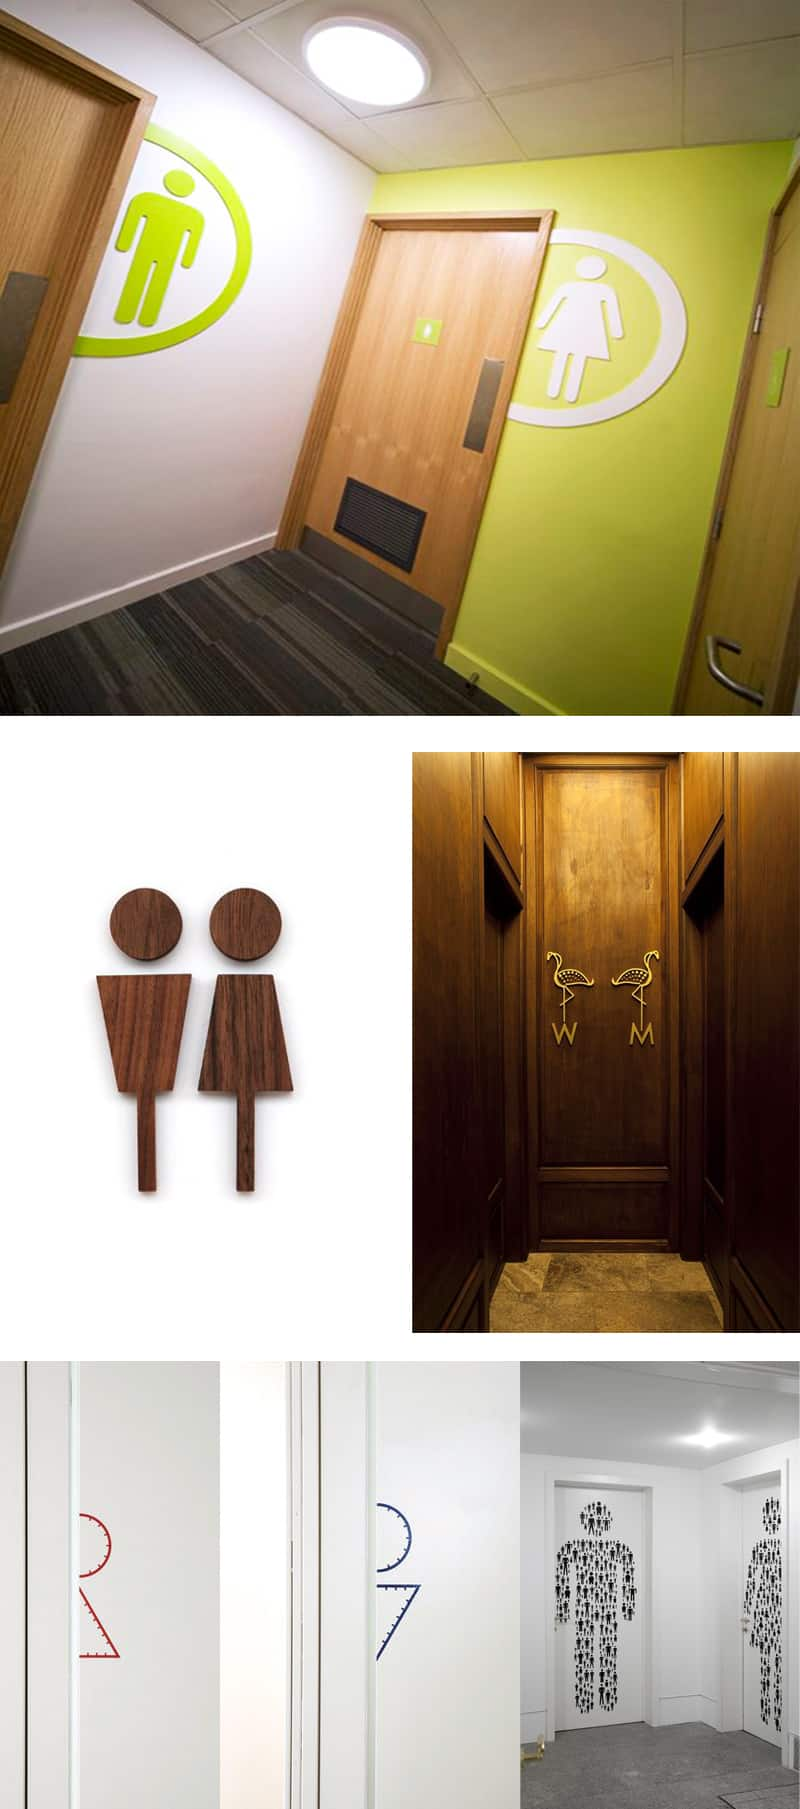 22 Creative and Funny Toilet Signs DesignRulz.com